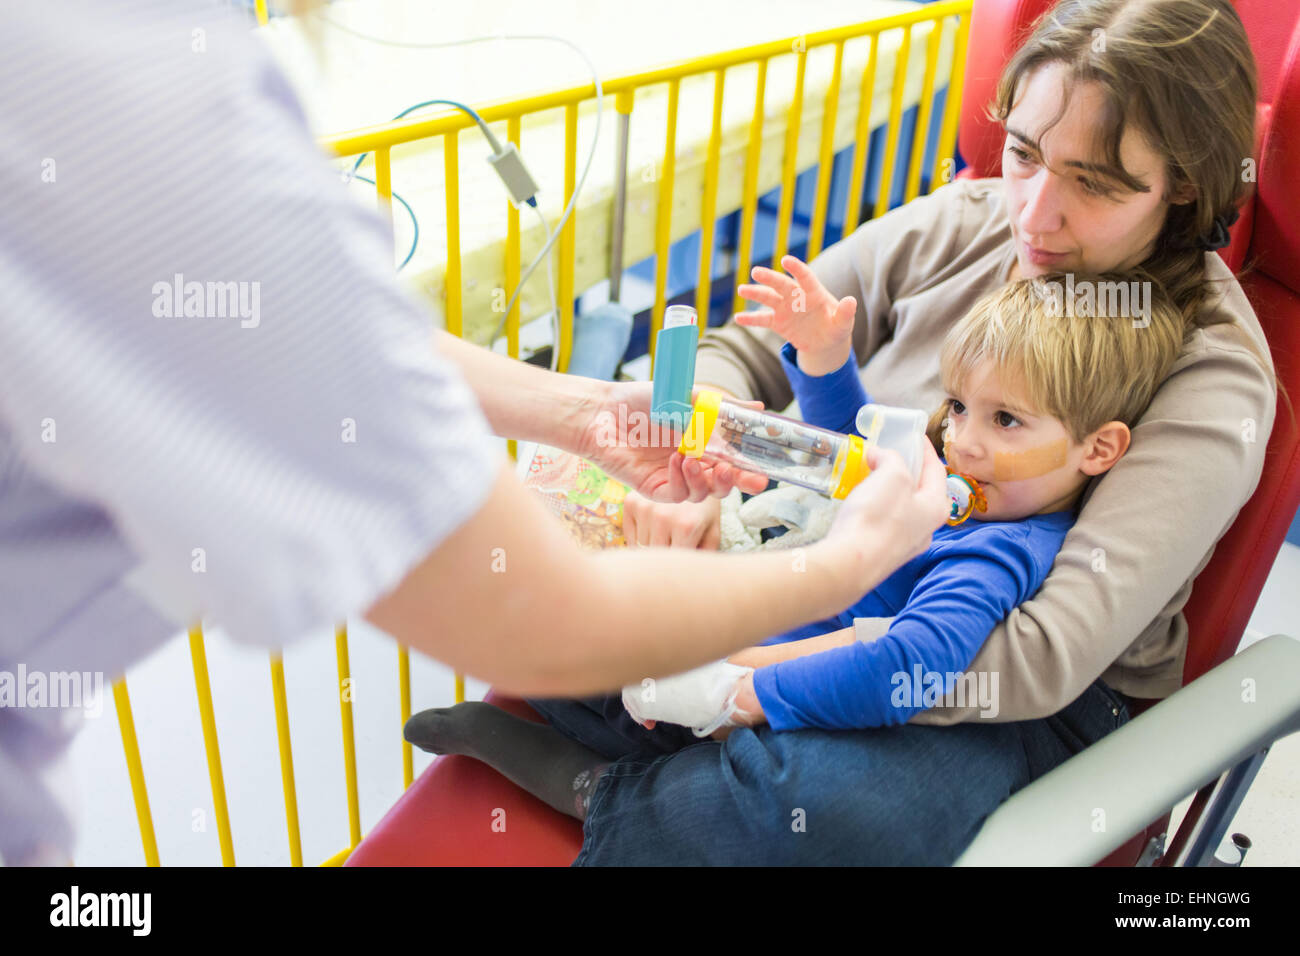 Child affected by a pmeumopathie, hospitalized in the pediatric department of Angoulême hospital, France. - Stock Image